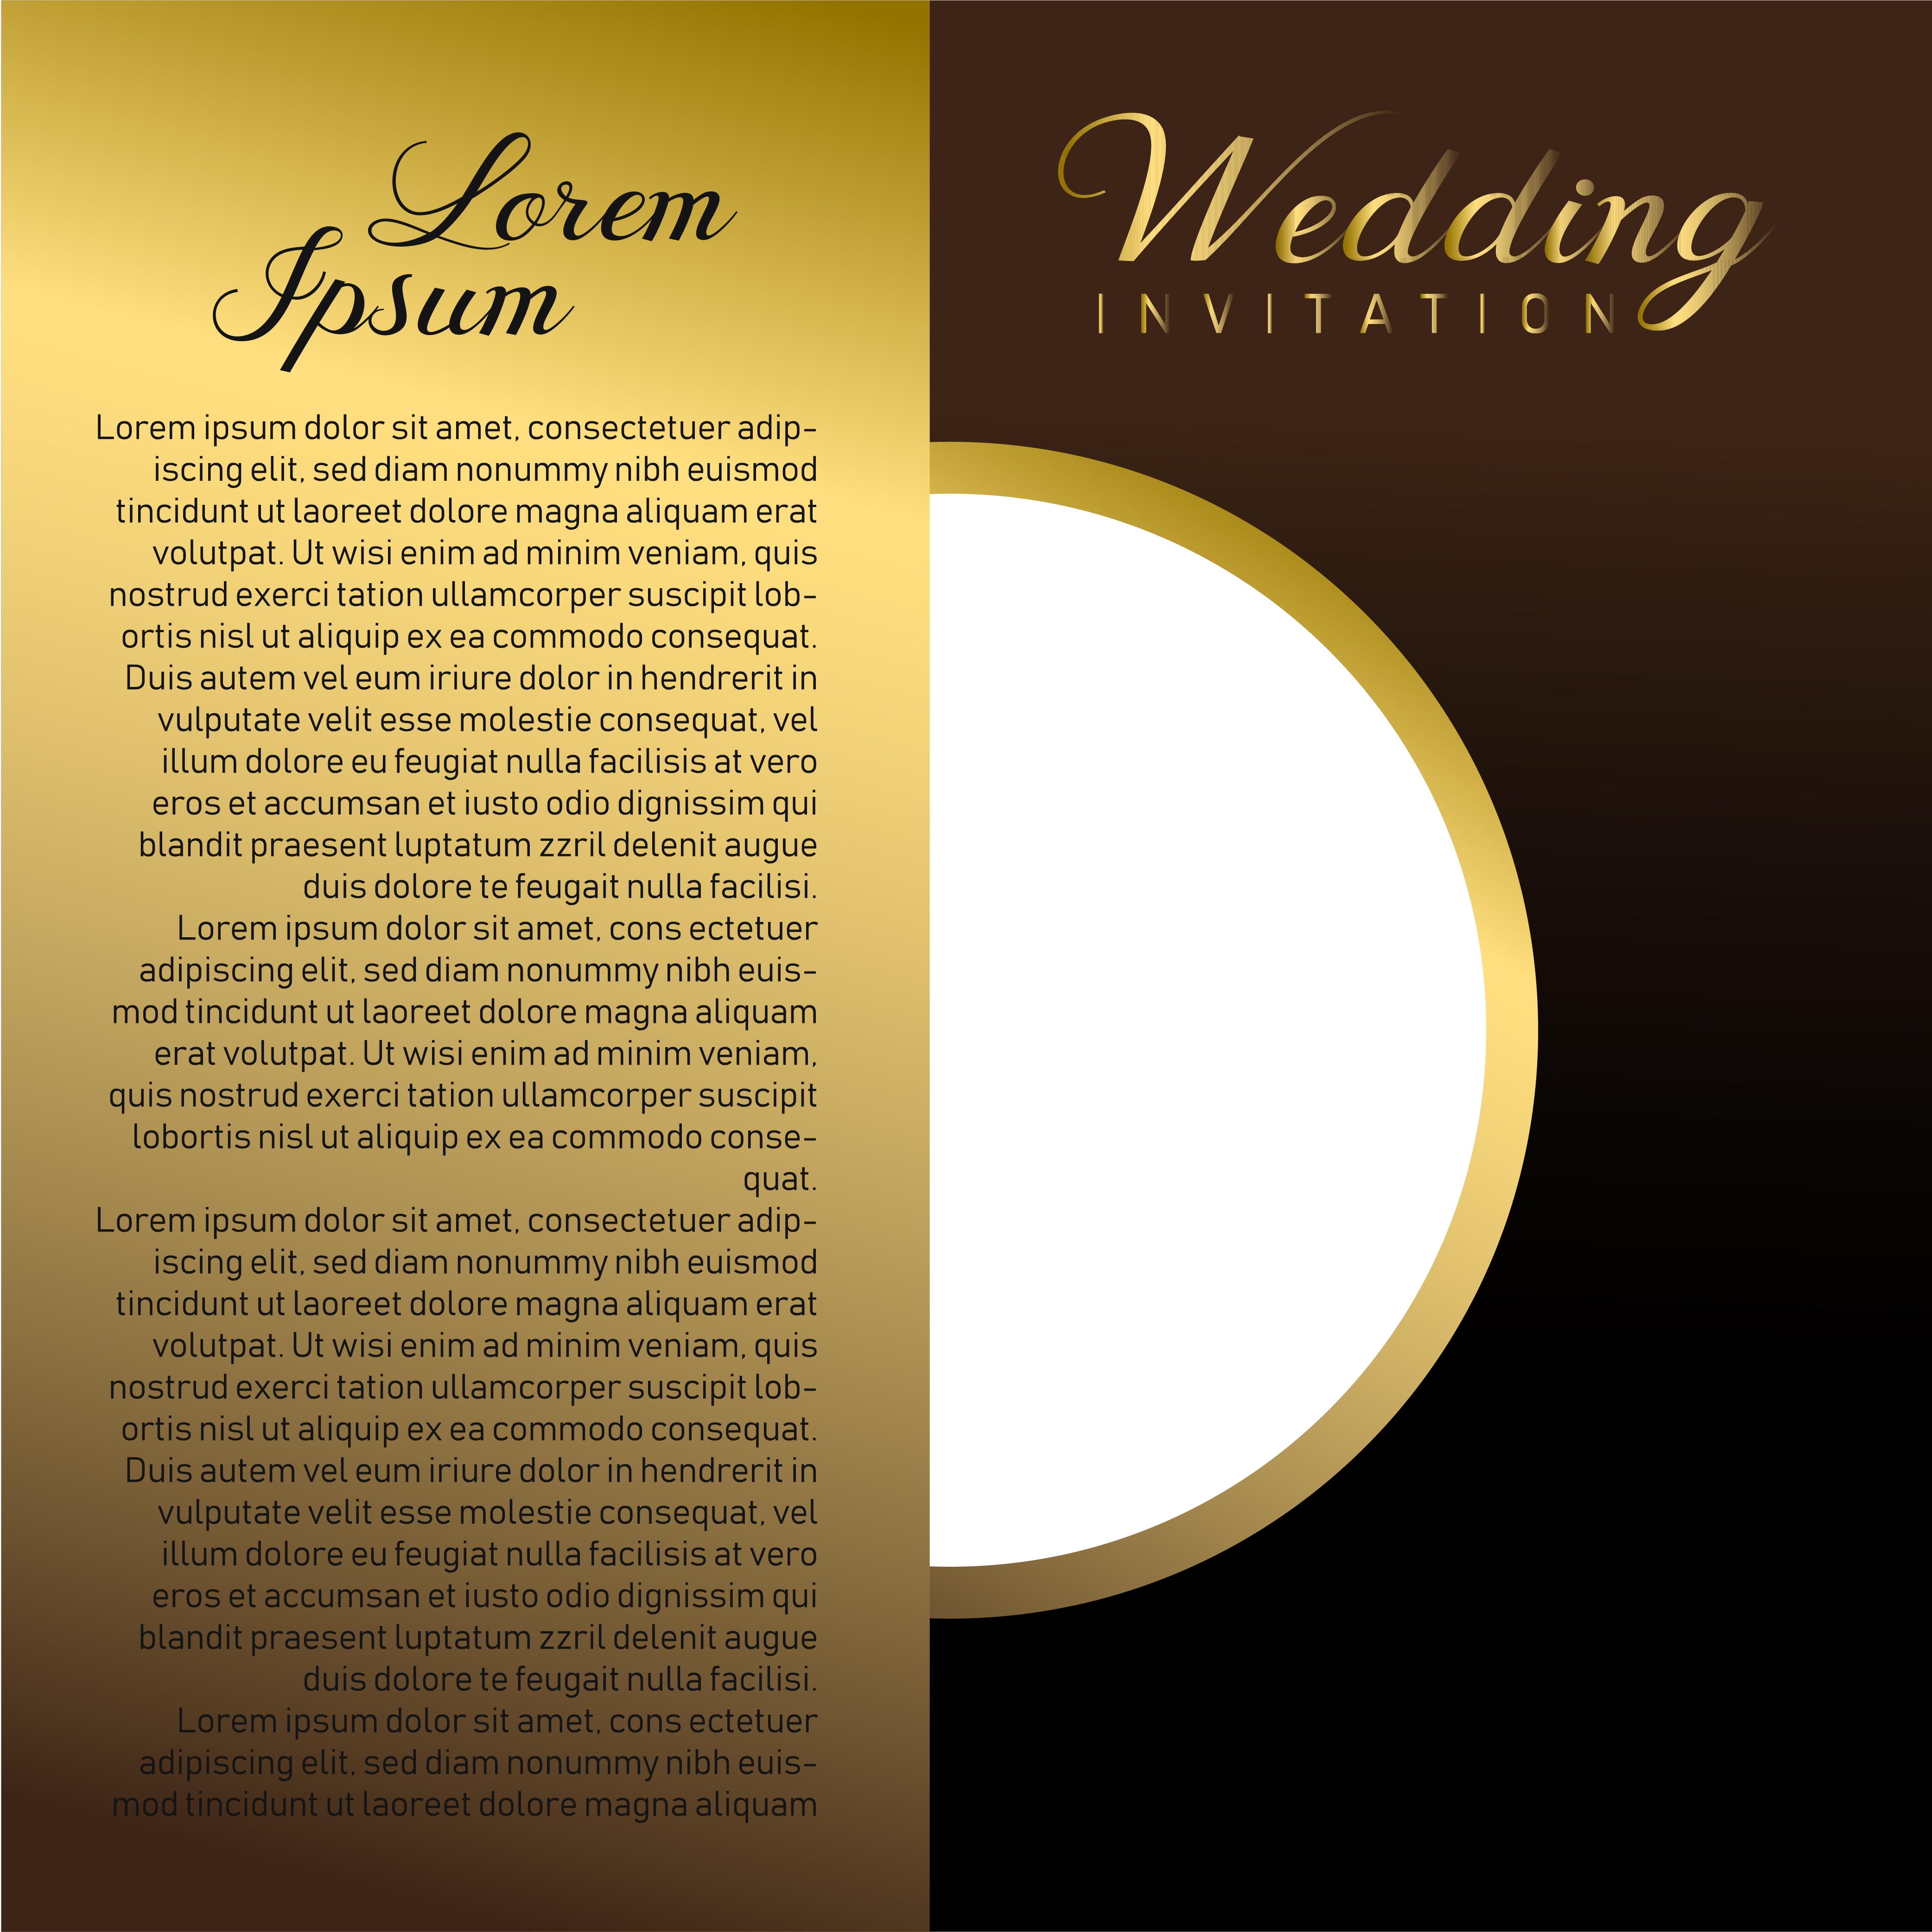 Wedding Invitation Card With Text Place - Download Free ...